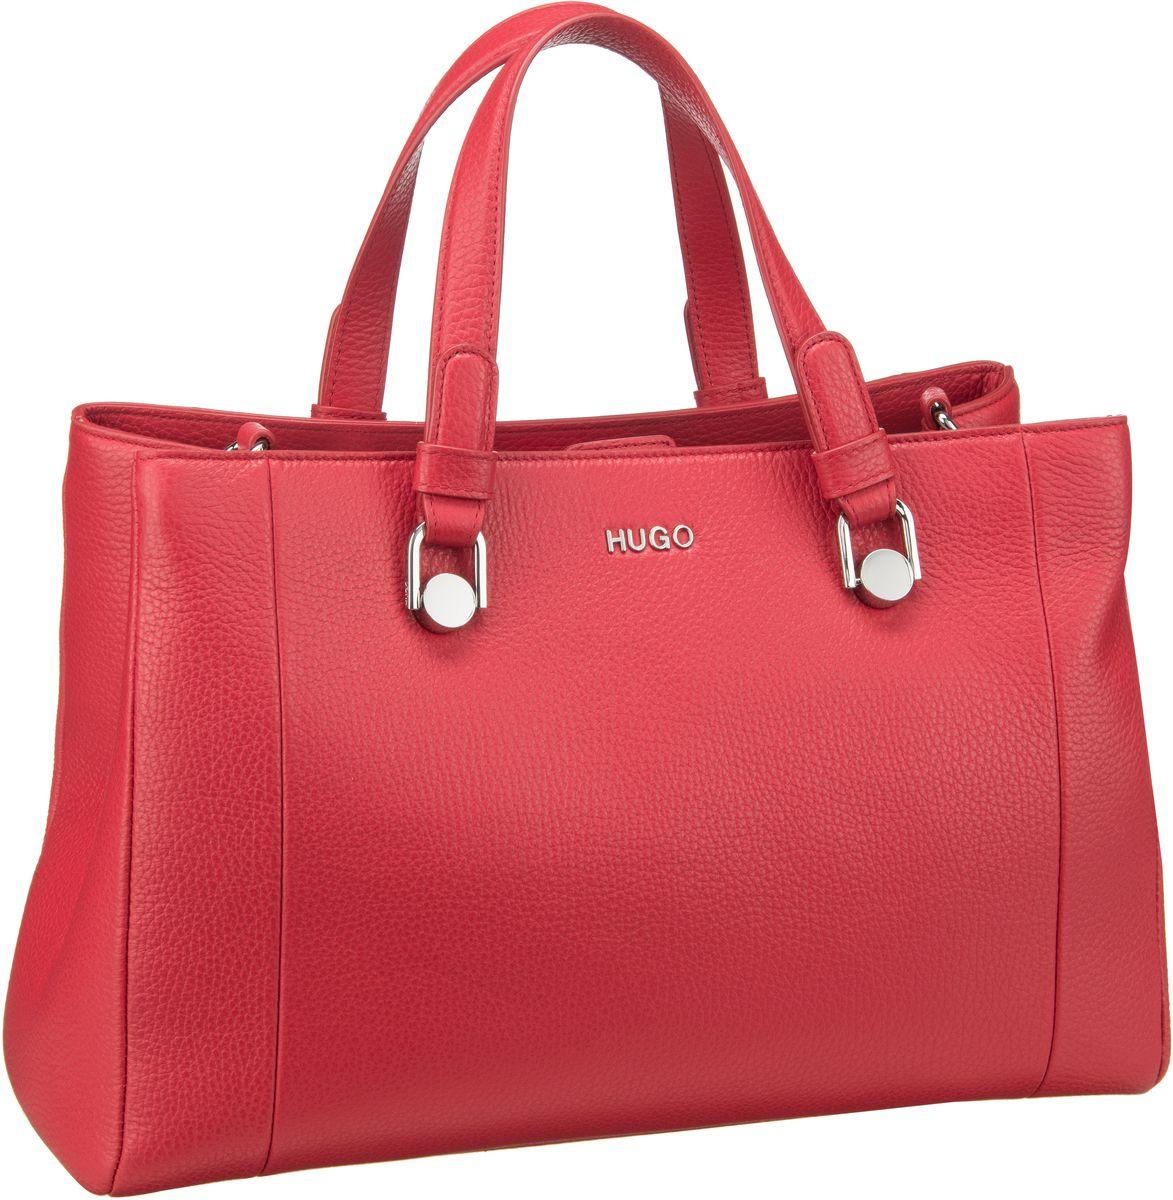 HUGO Handtasche Mayfair Tote 397579 Bright Red